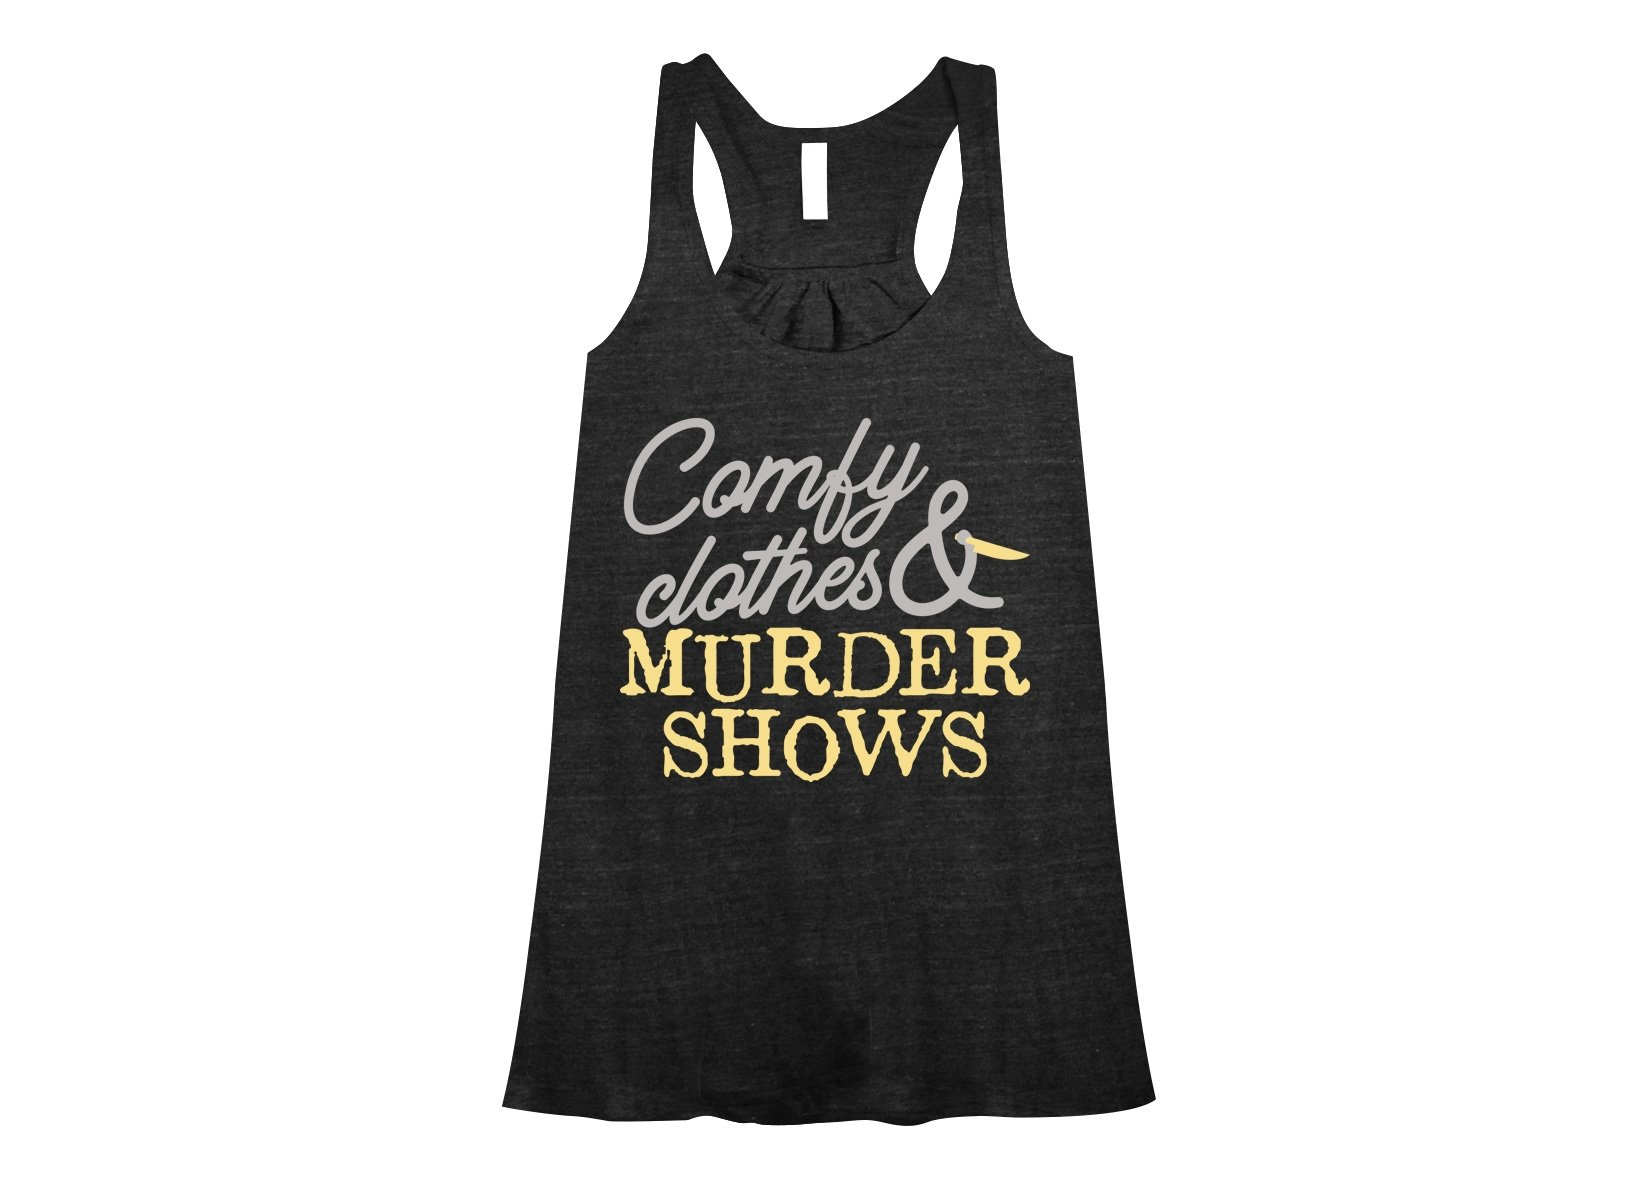 Comfy Clothes & Murder Shows on Womens Tanks T-Shirt